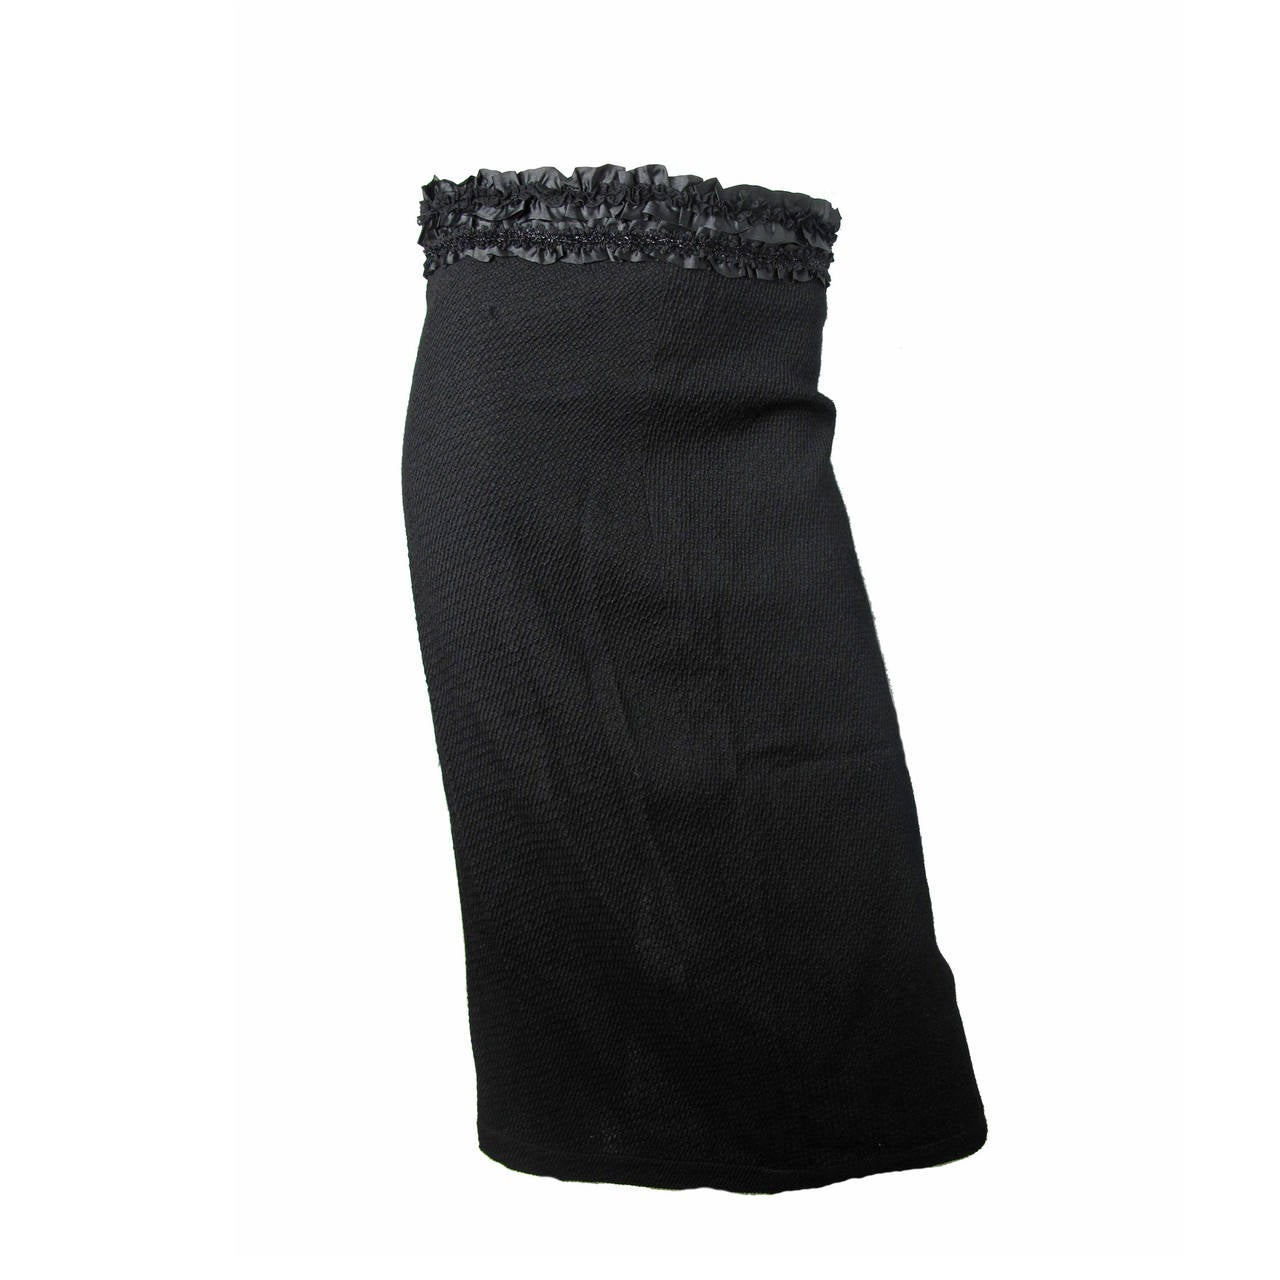 Comme des Garcons skirt with embellished waistband, circa 2008